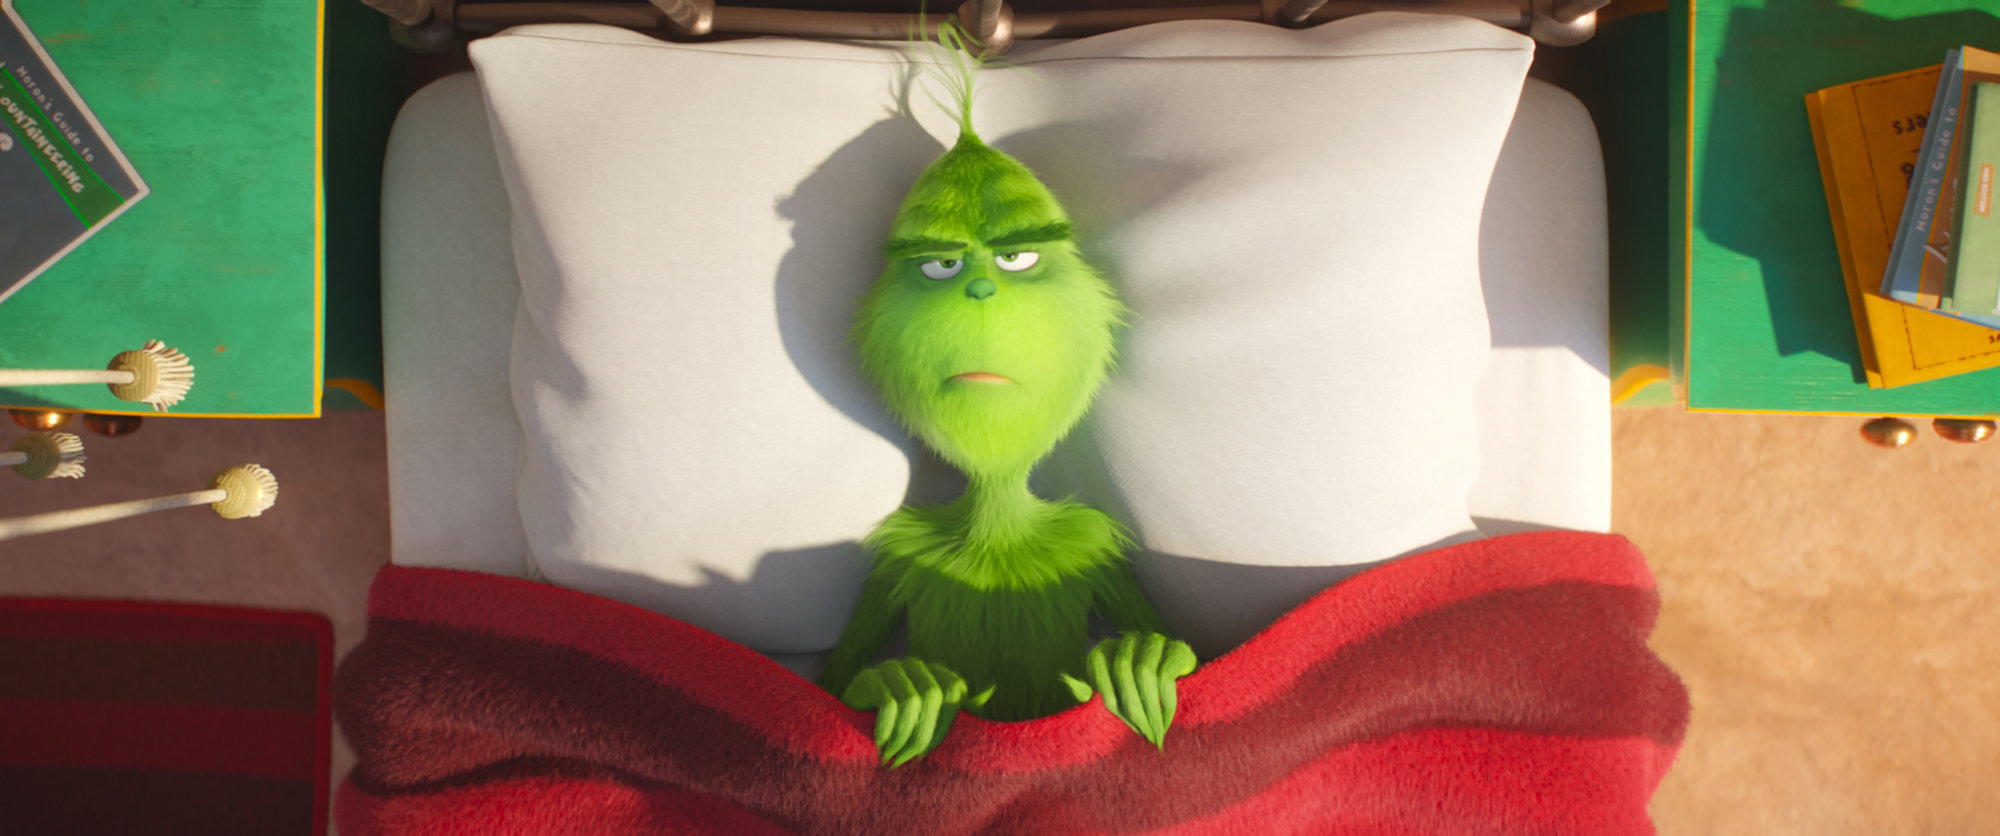 Image result for 鬼靈精 The Grinch